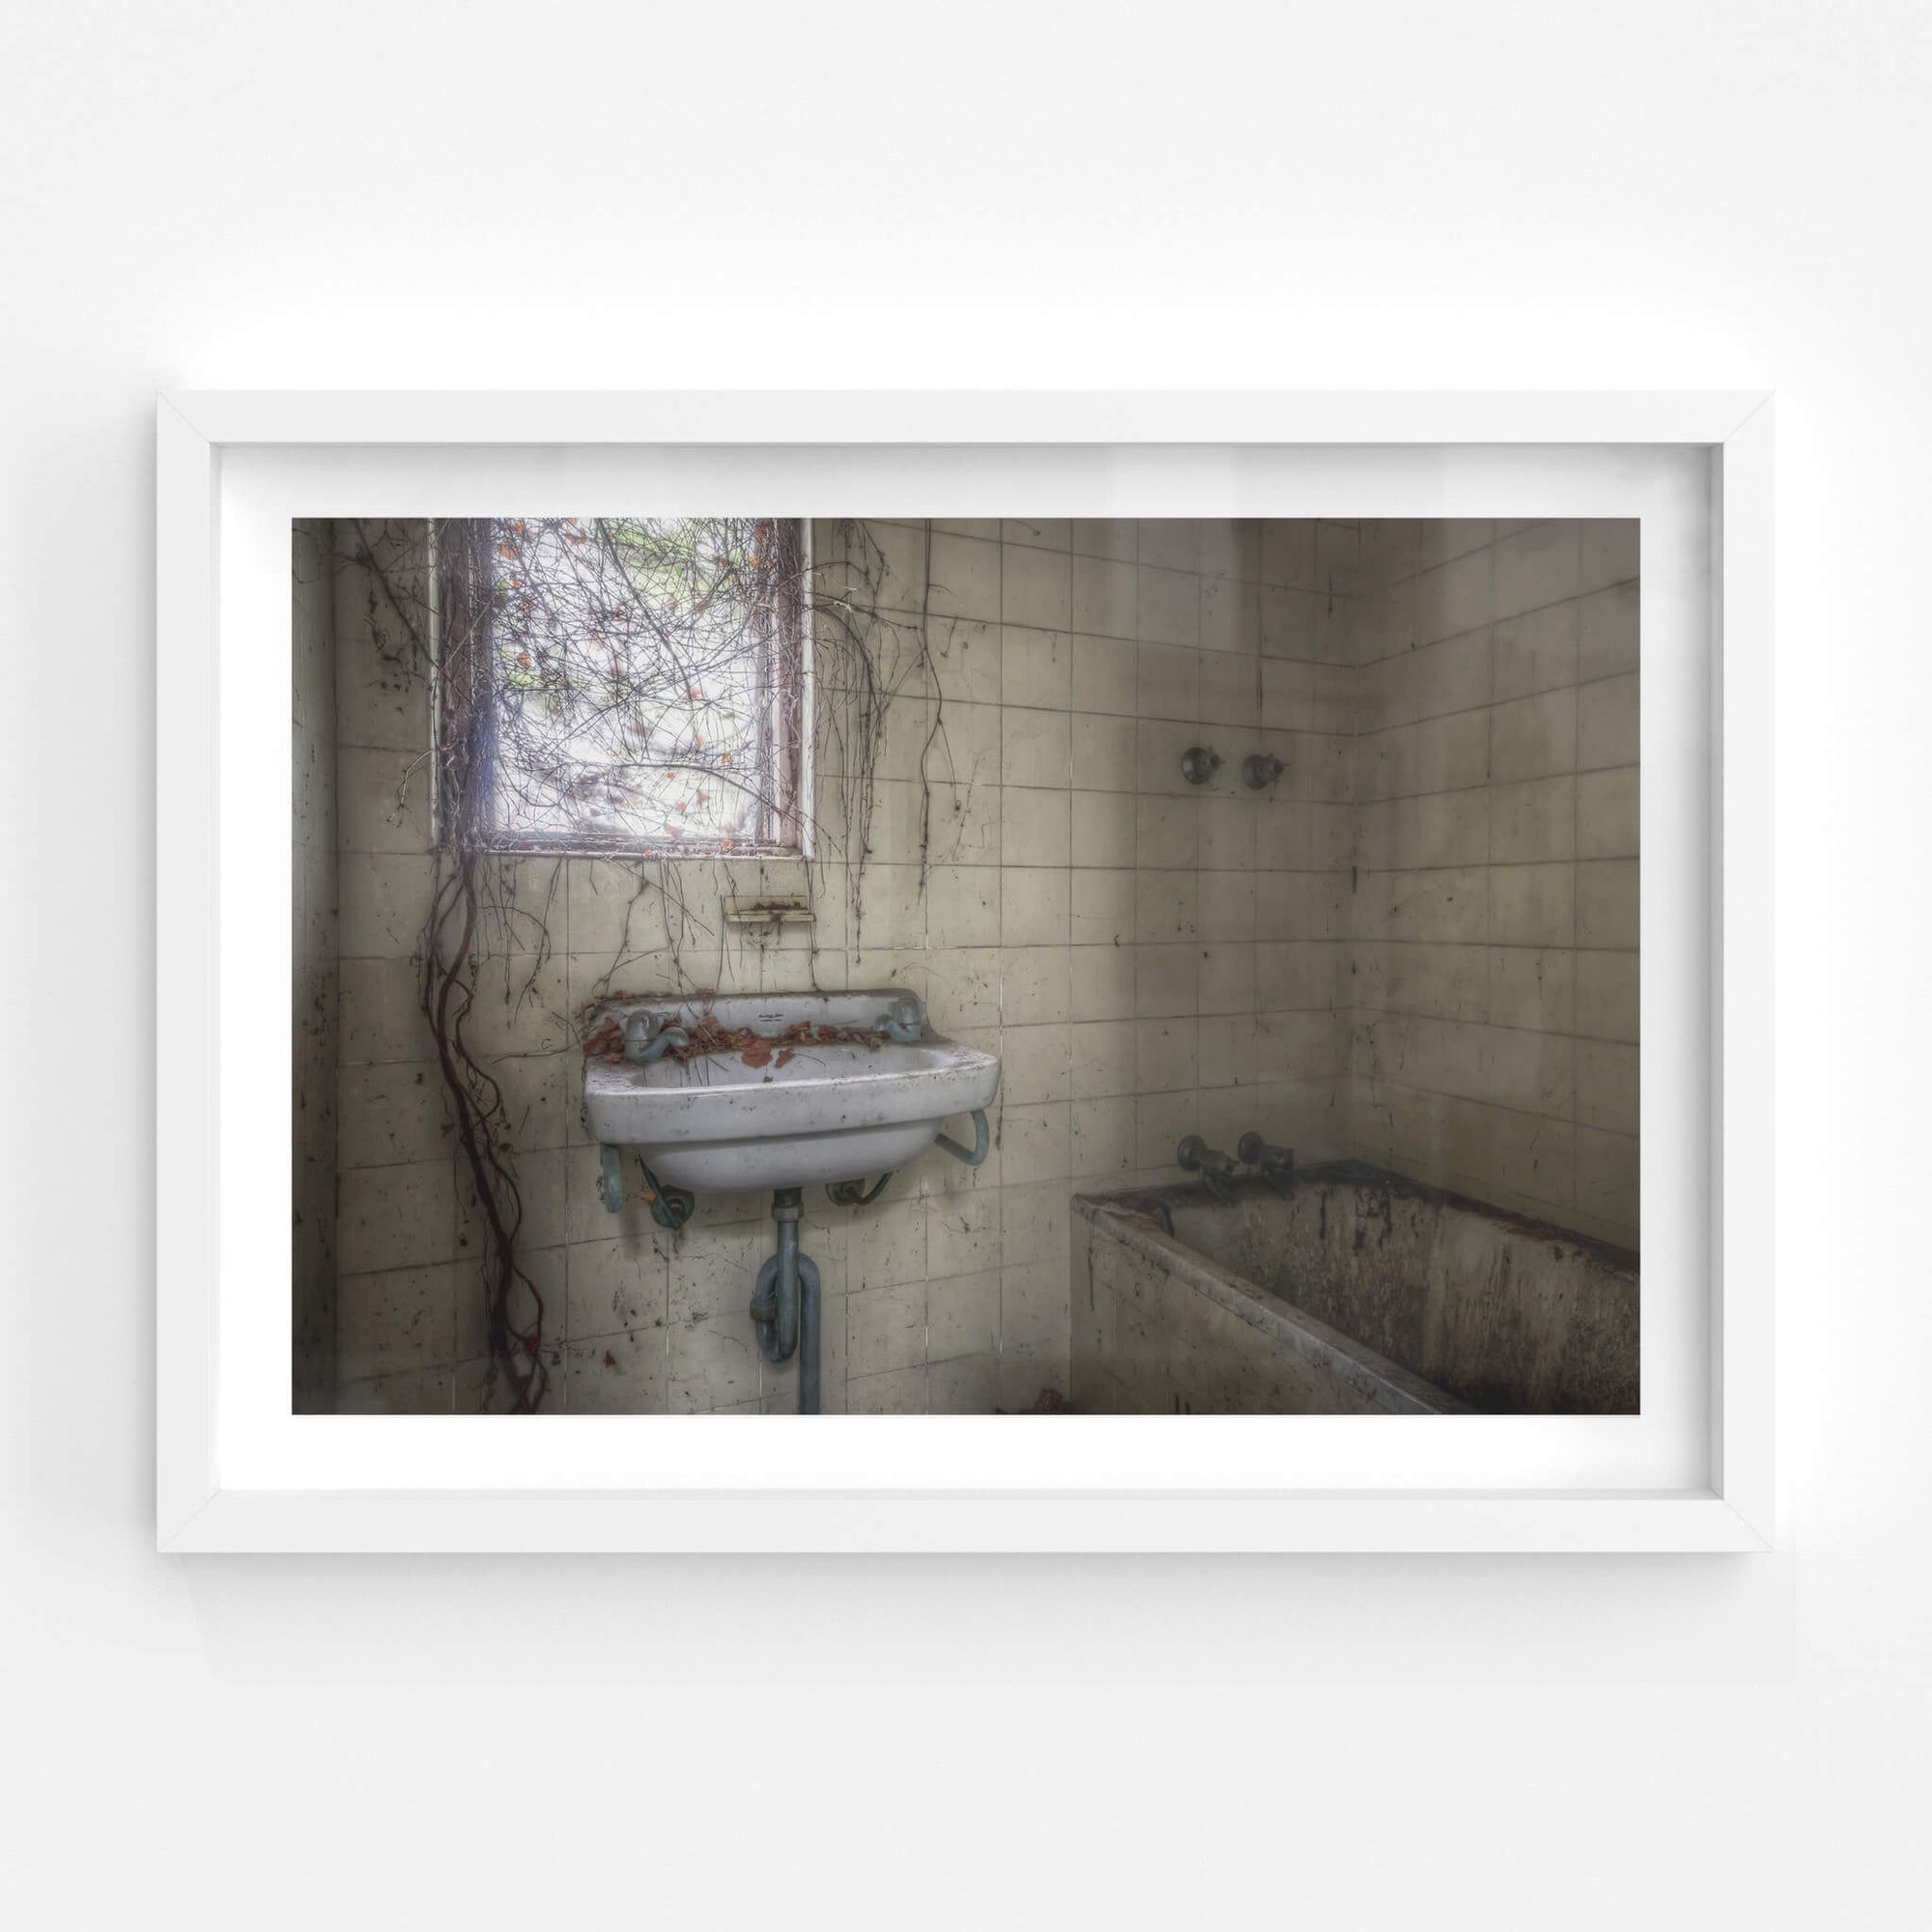 Bathroom | Terminus Hotel Fine Art Print - Lost Collective Shop